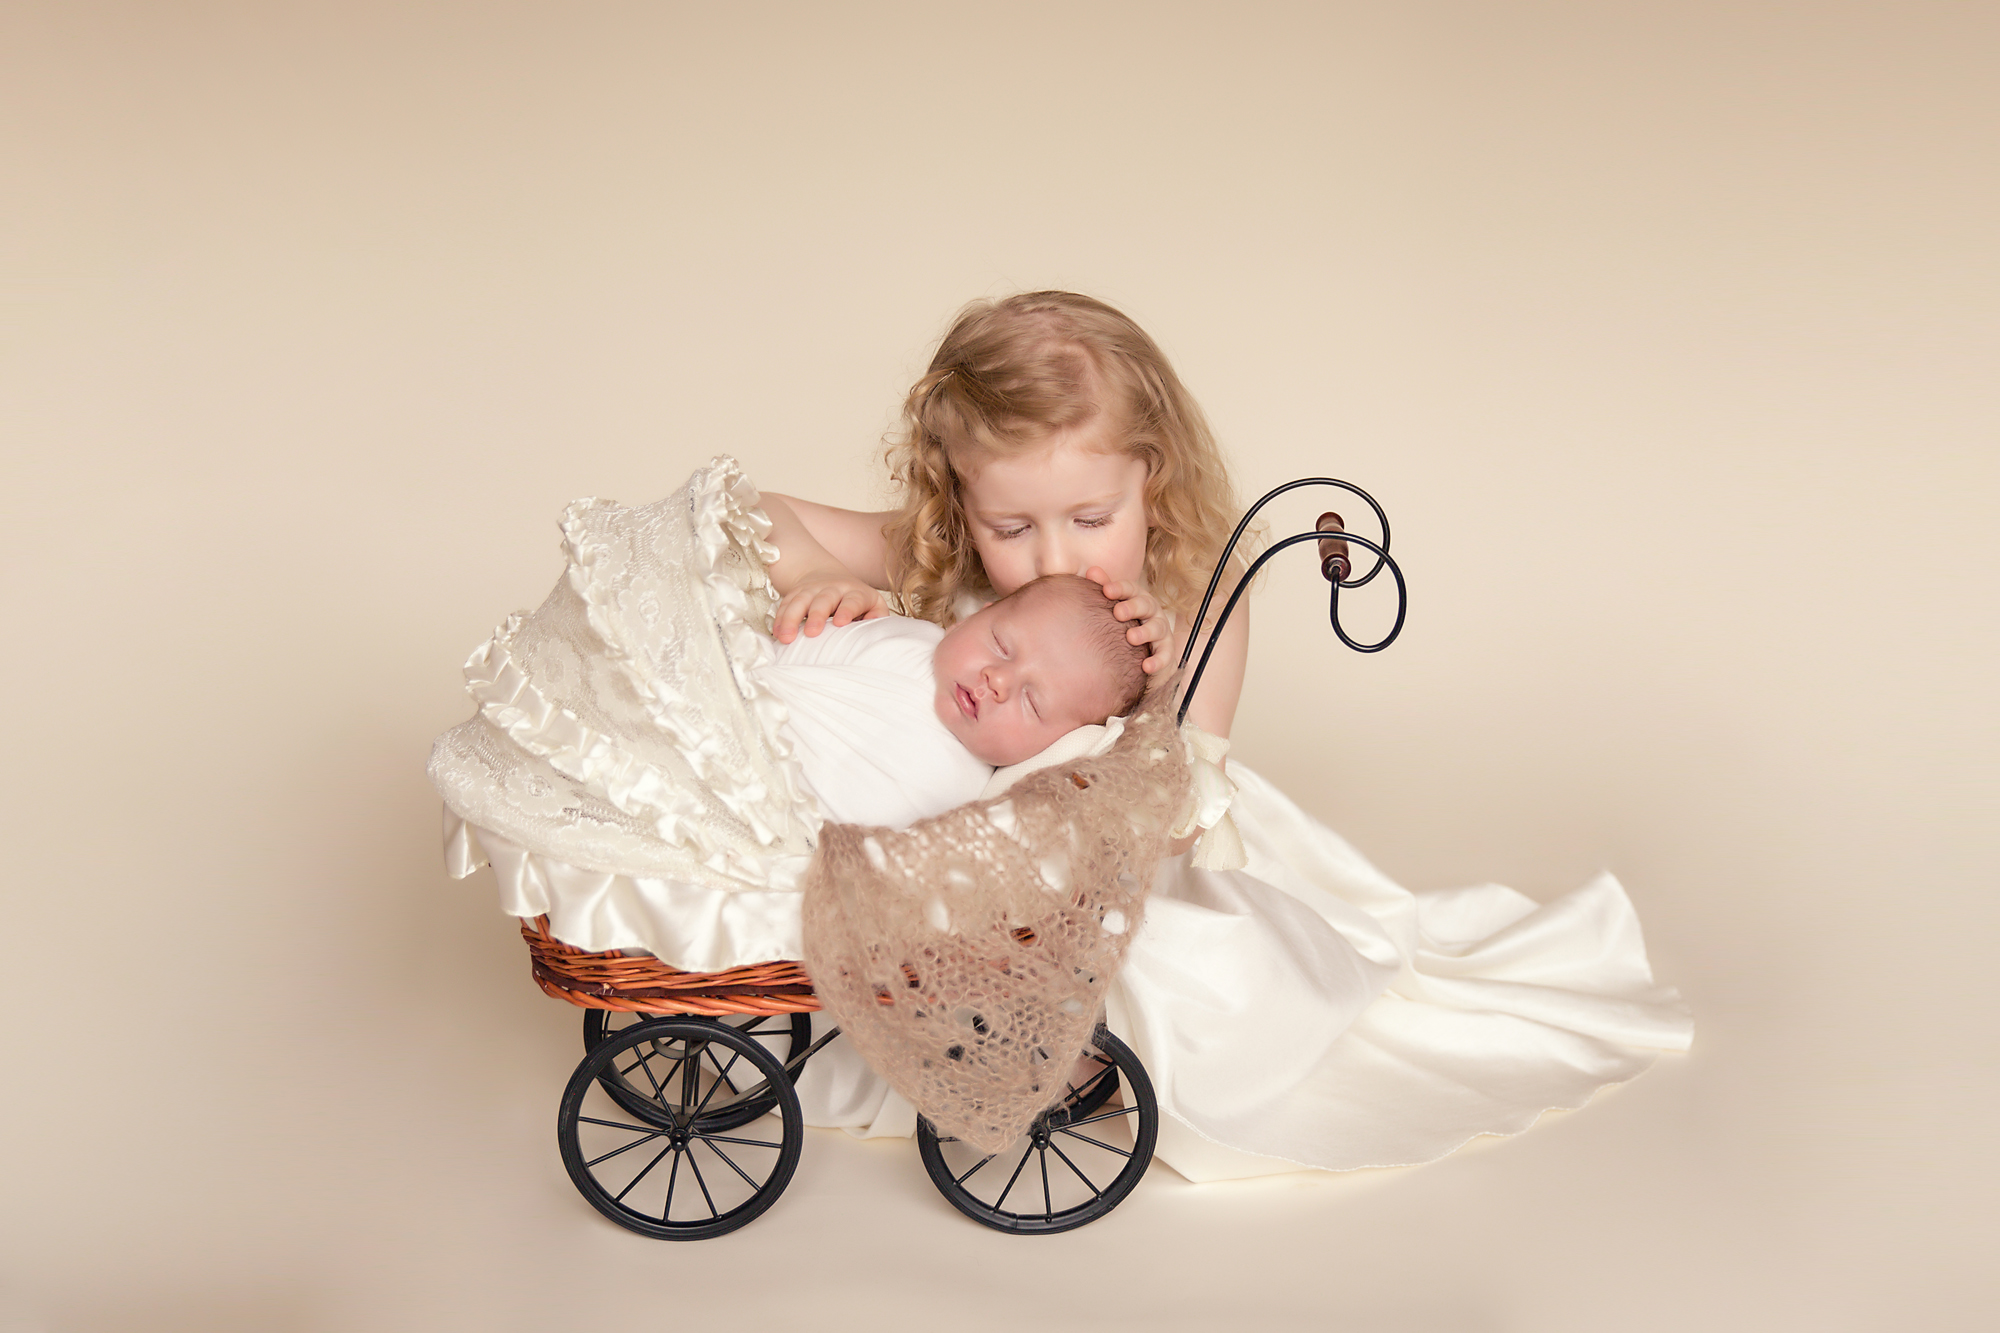 Big sister is kissing her newborn brother in a stroller. Calgary Newborn and Baby photographer - Milashka Photography.